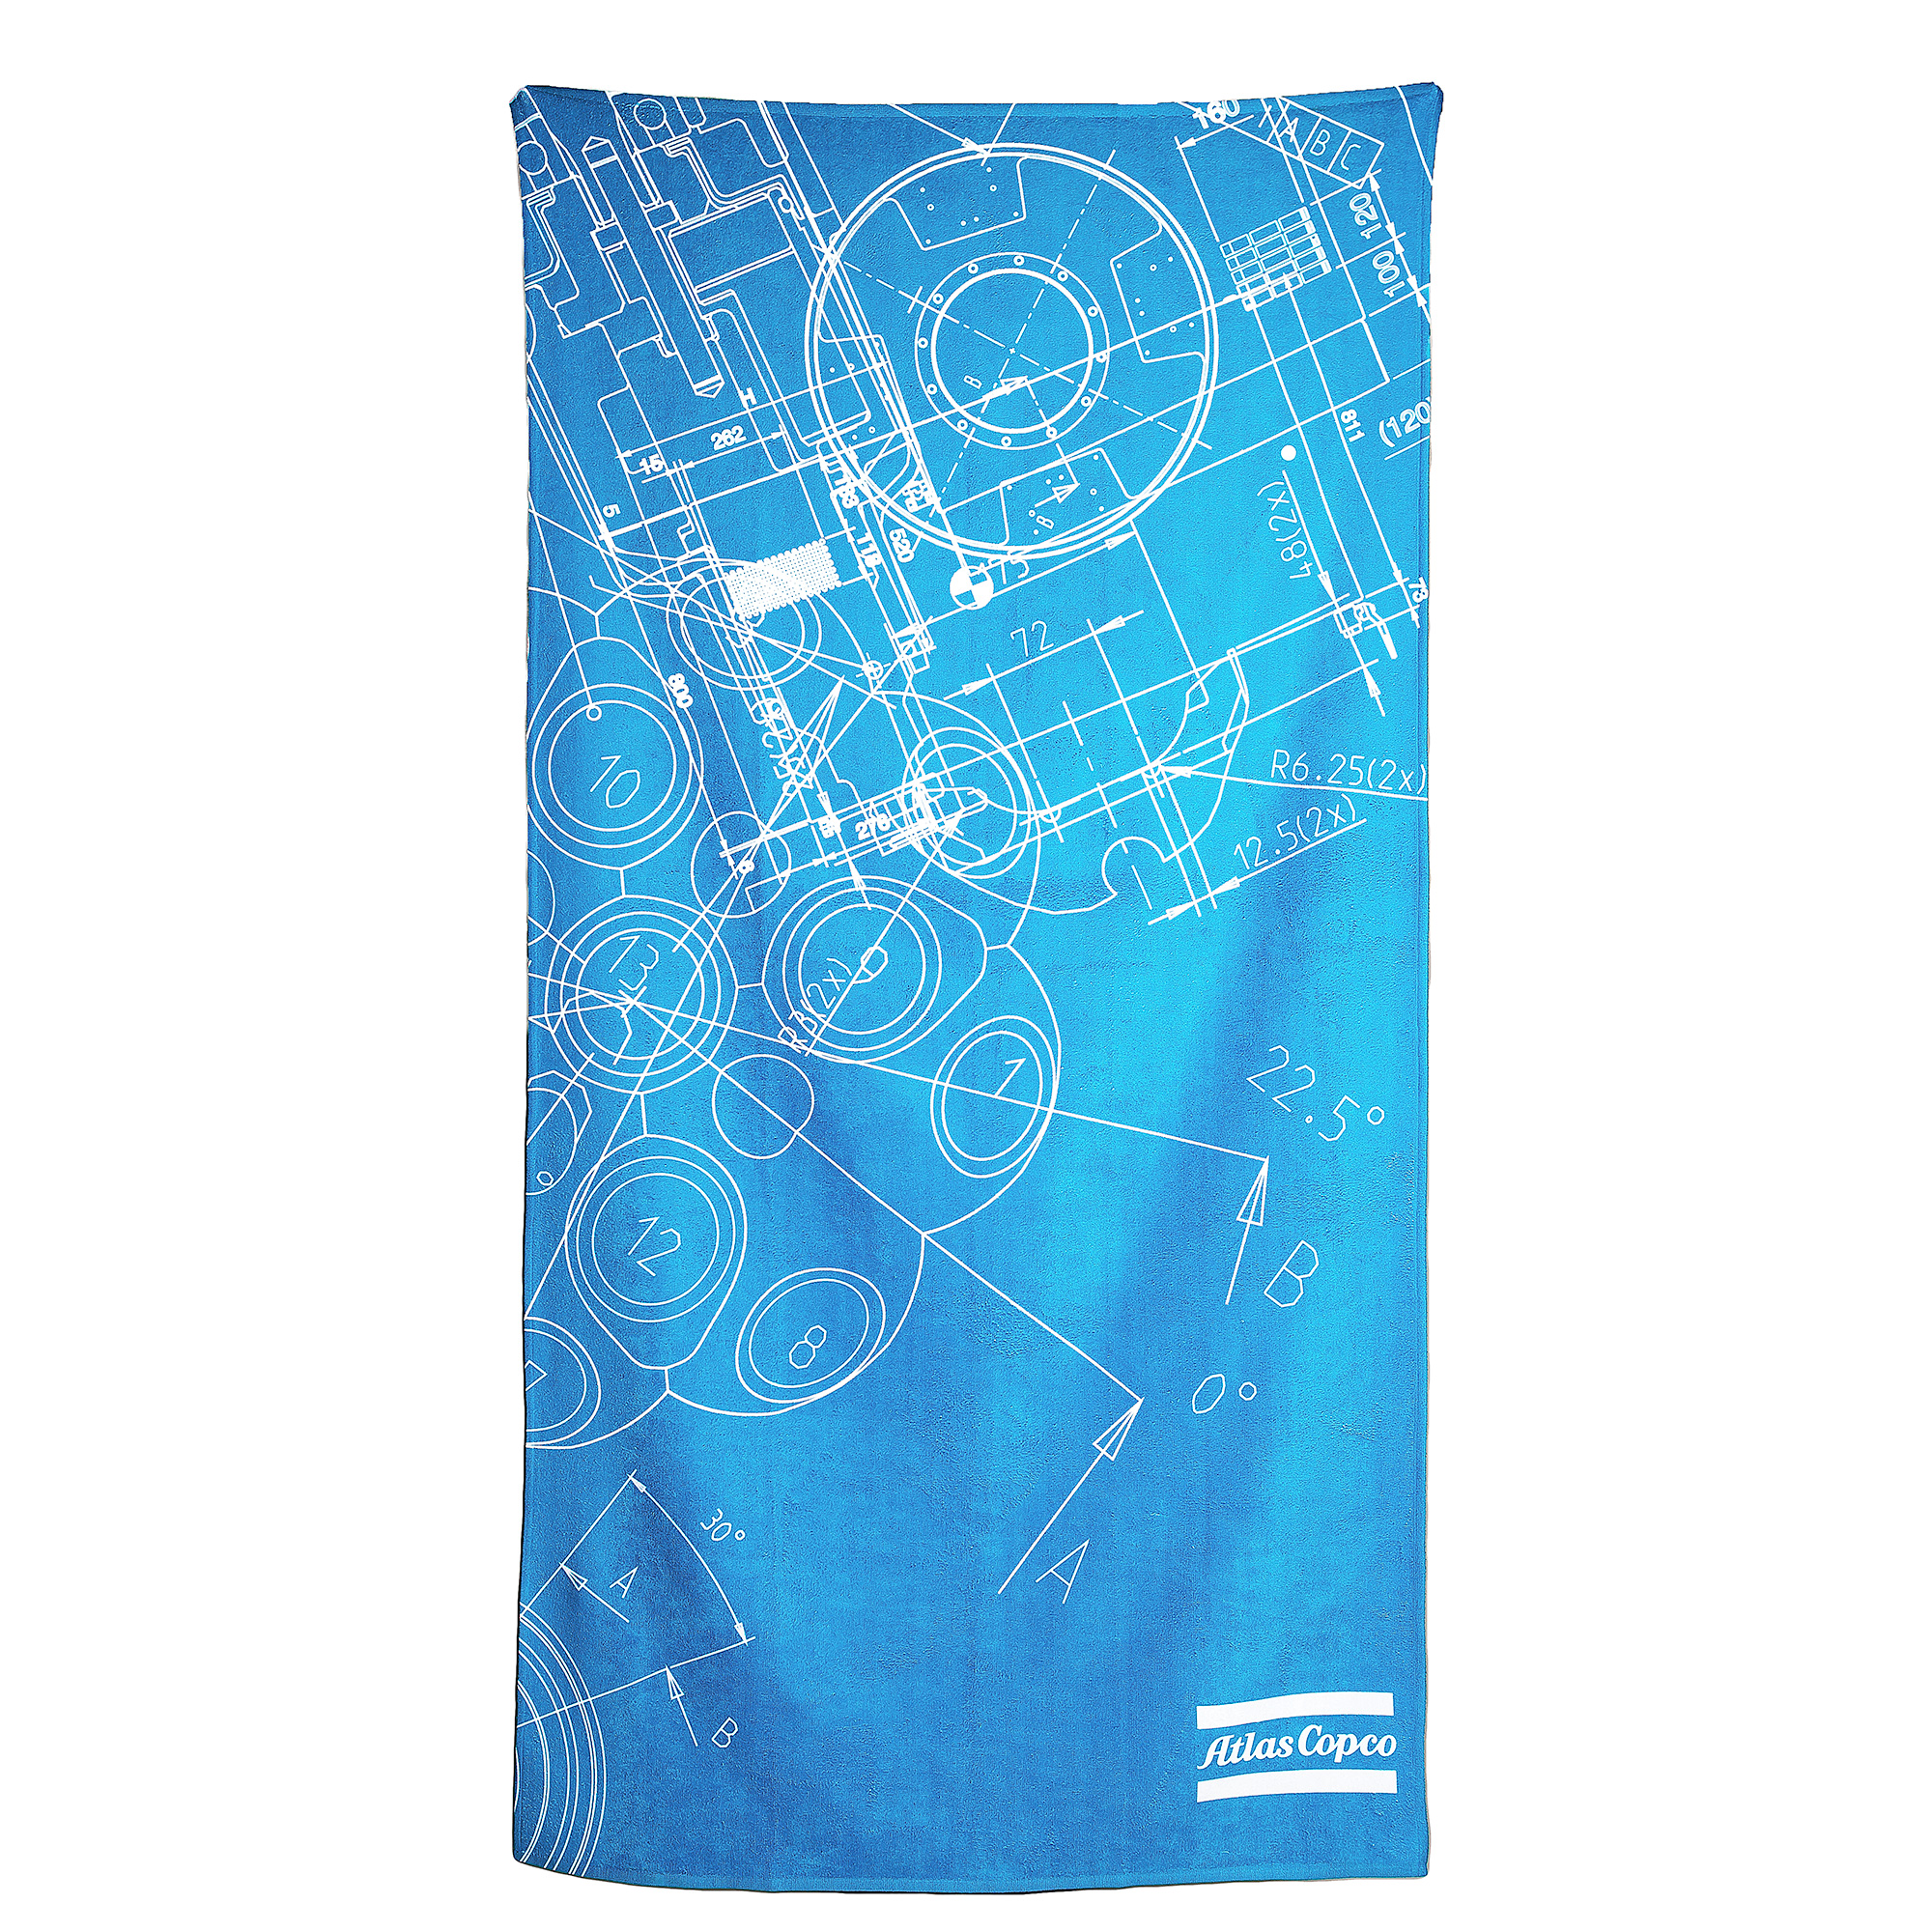 Large beach towel that is perfect for lazy days around the pool or at the beach. The microfiber and cotton blend allows the towel to absorb water better and still dry more quickly than a traditional cotton towel. Takes up less space when packing and is the perfect towel to carry along on trips. <br><br>